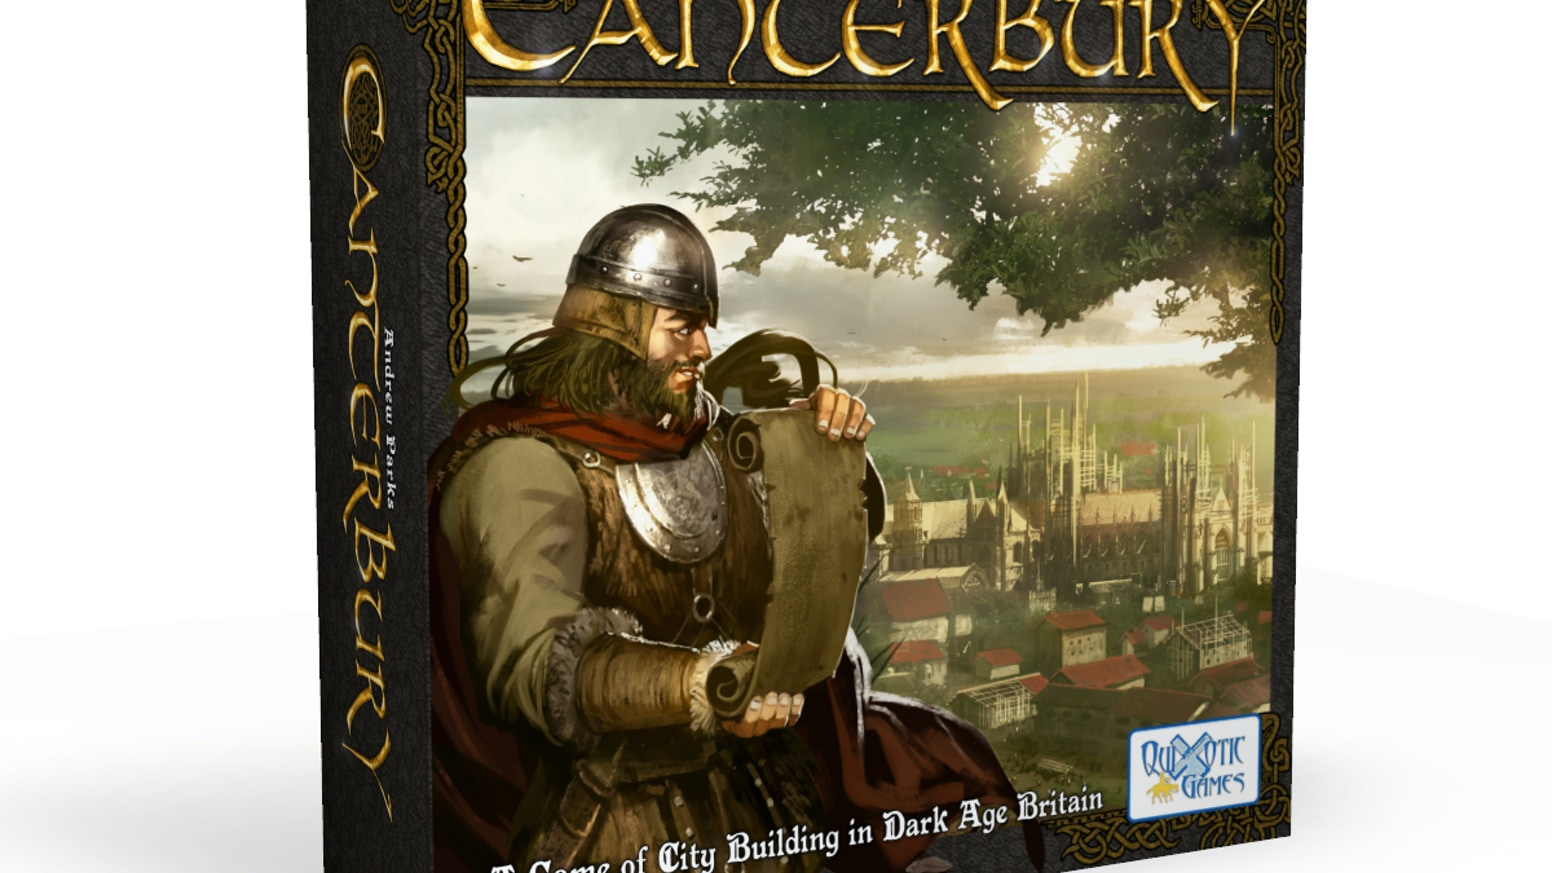 Canterbury is a game of city-building in Dark Age Britain. Become a Saxon Lord and build one of the greatest cities of all!